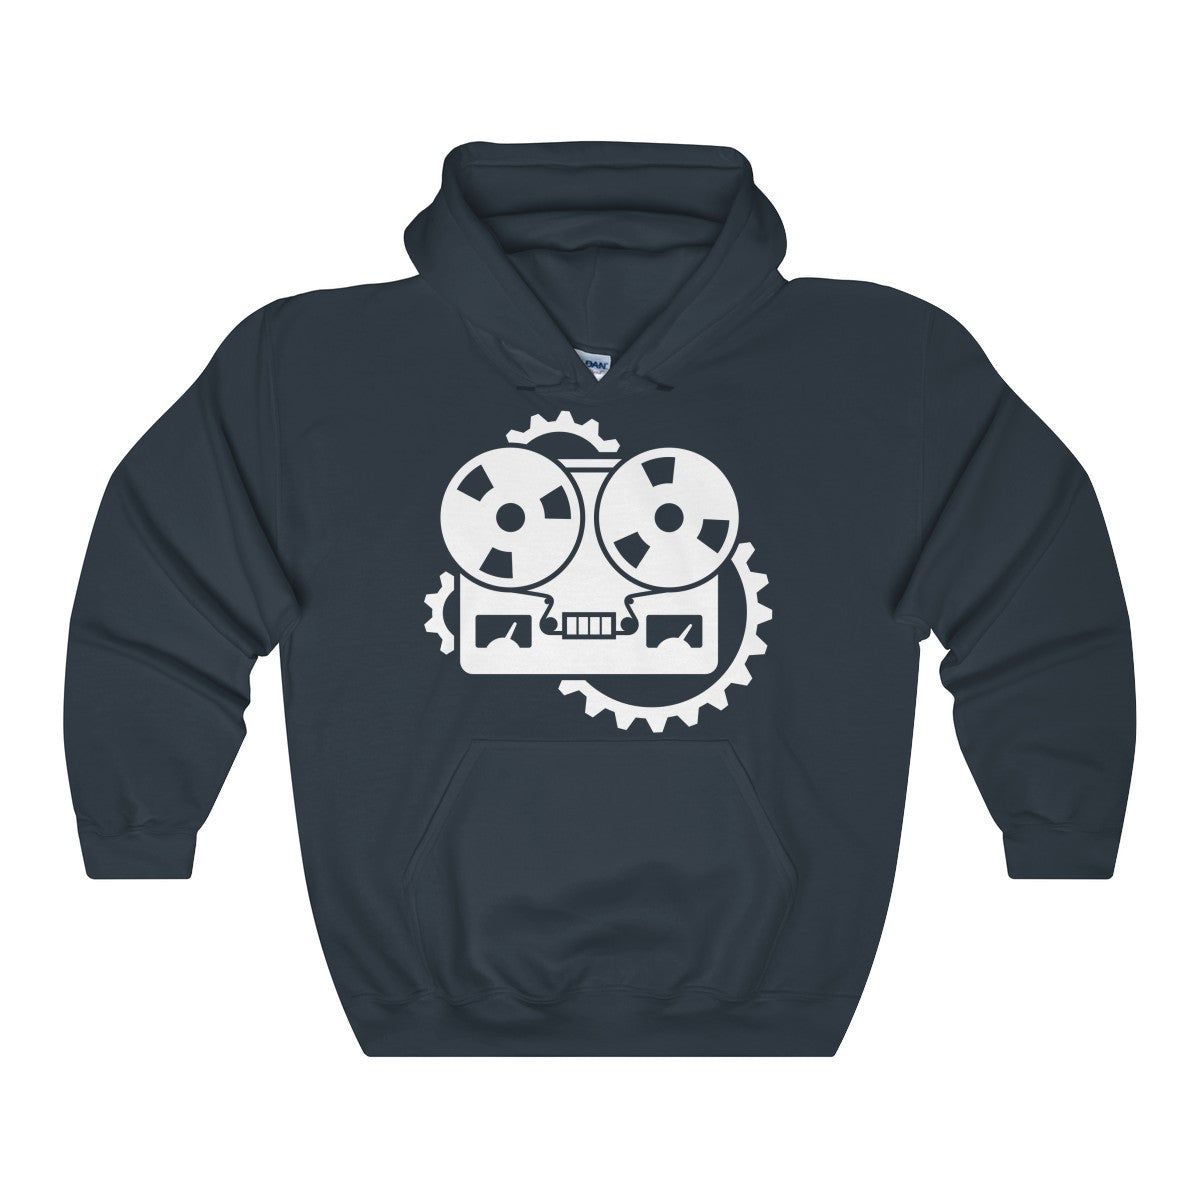 URM Tape Machine Hooded Sweatshirt, White Print